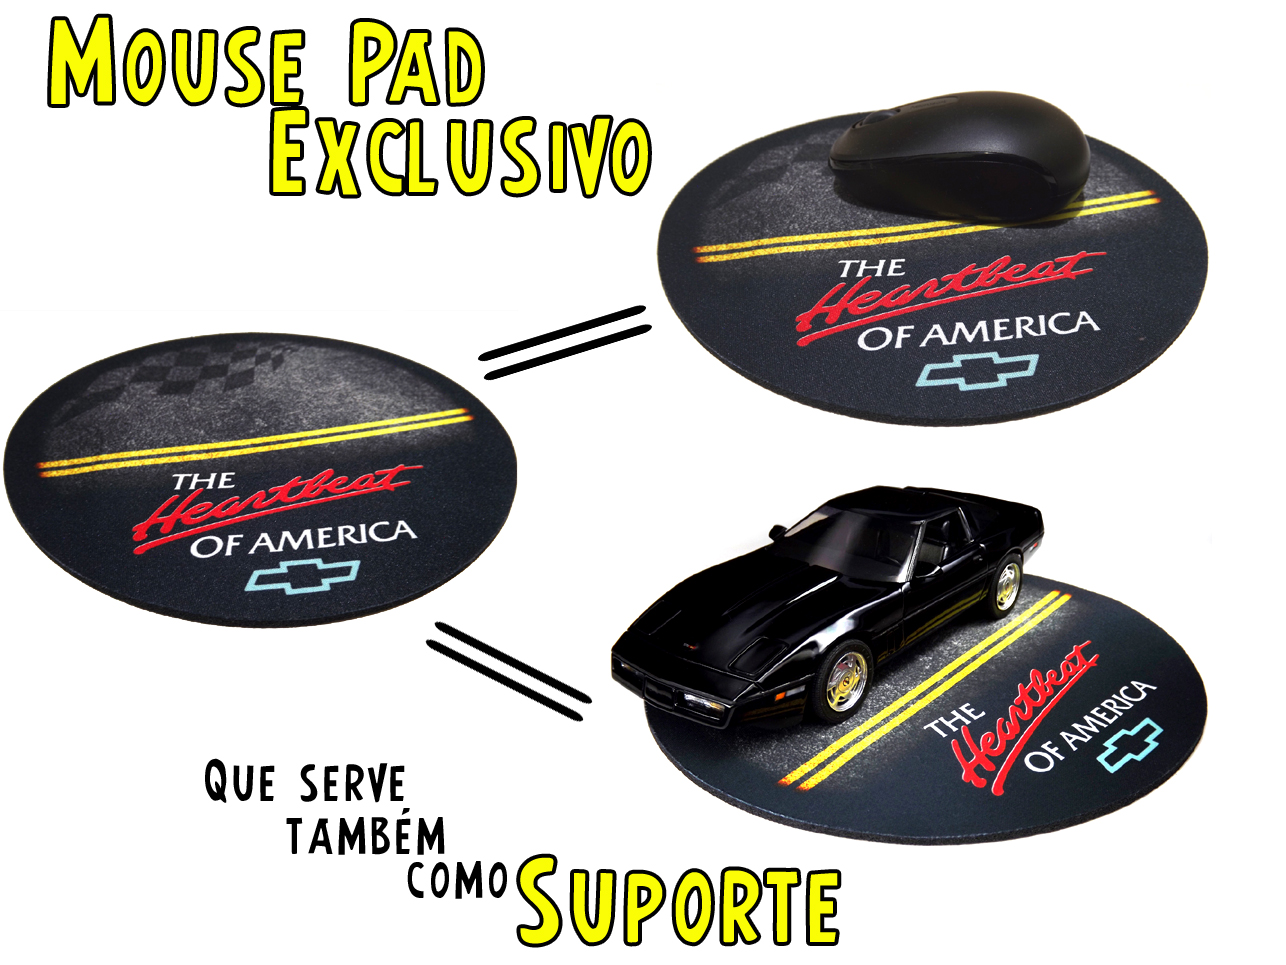 Mouse Pad Exclusivo / Suporte